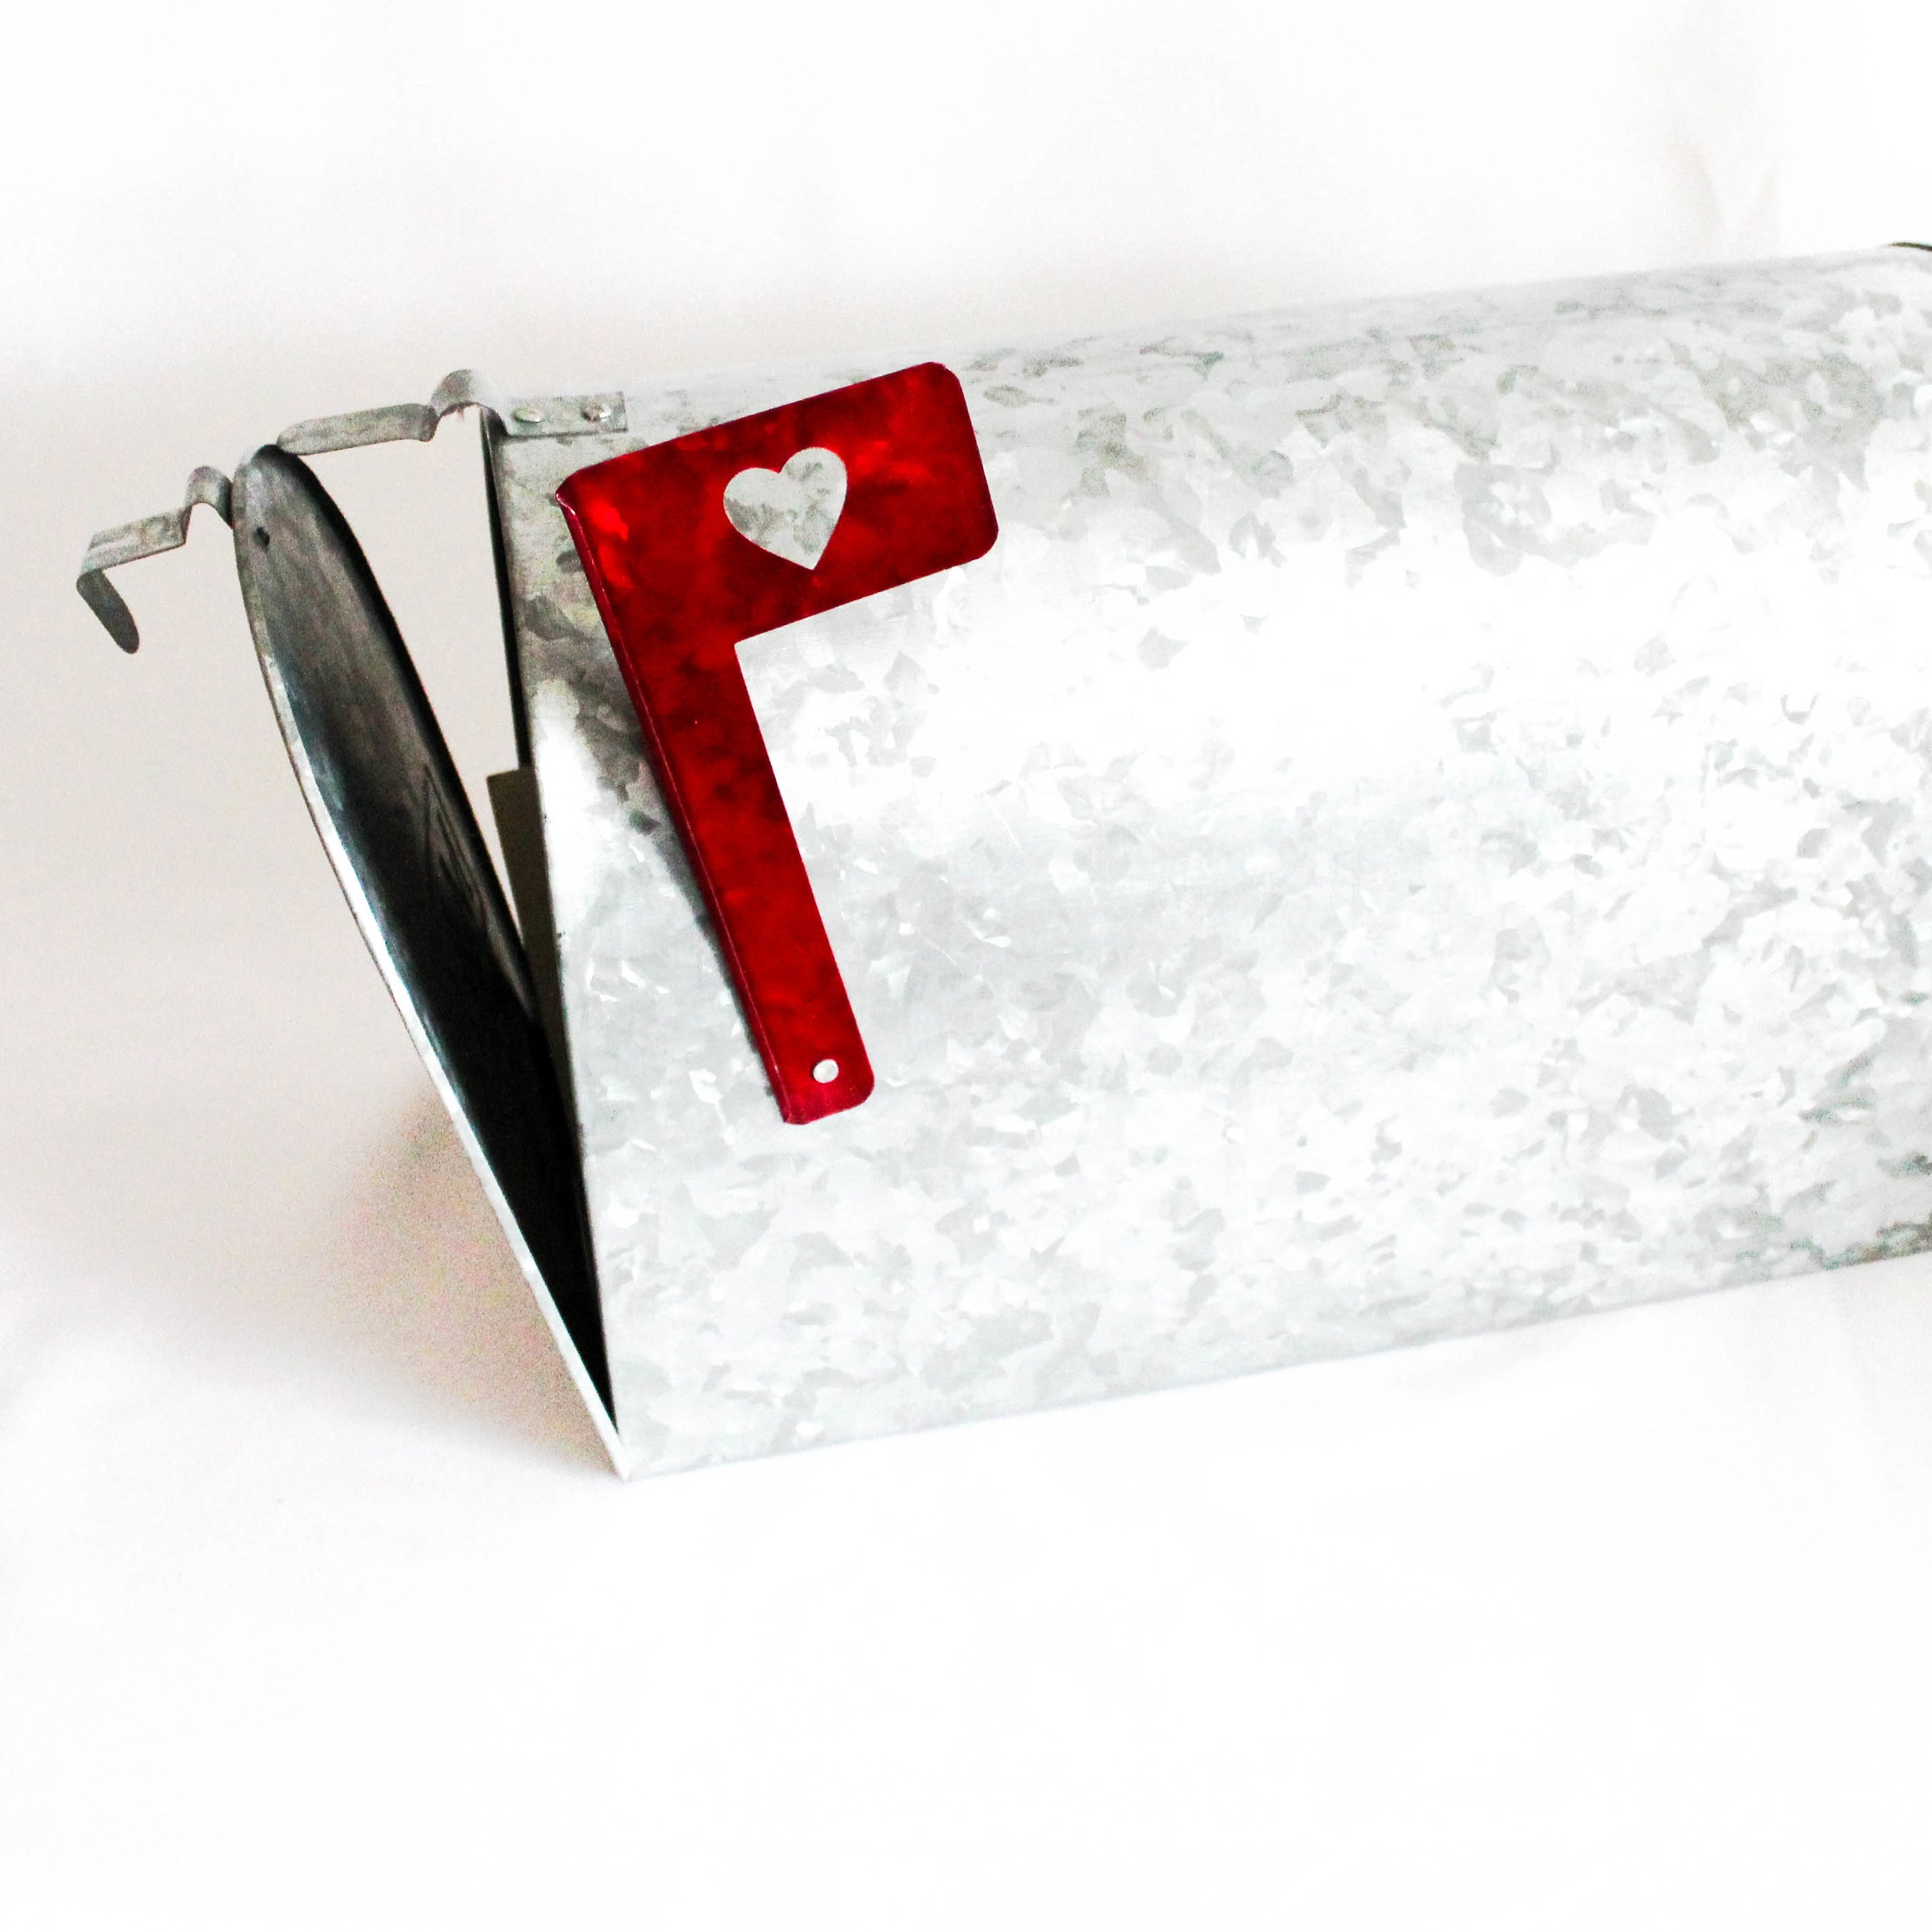 American Style Mailbox - This mailbox is a great alternative to a postbox and suits a variety of bold wedding themes. With a lovely red heart flag. It can be customised with a card sign or left plain and can holdu around 250 cards so plenty of space for even the largest wedding party!